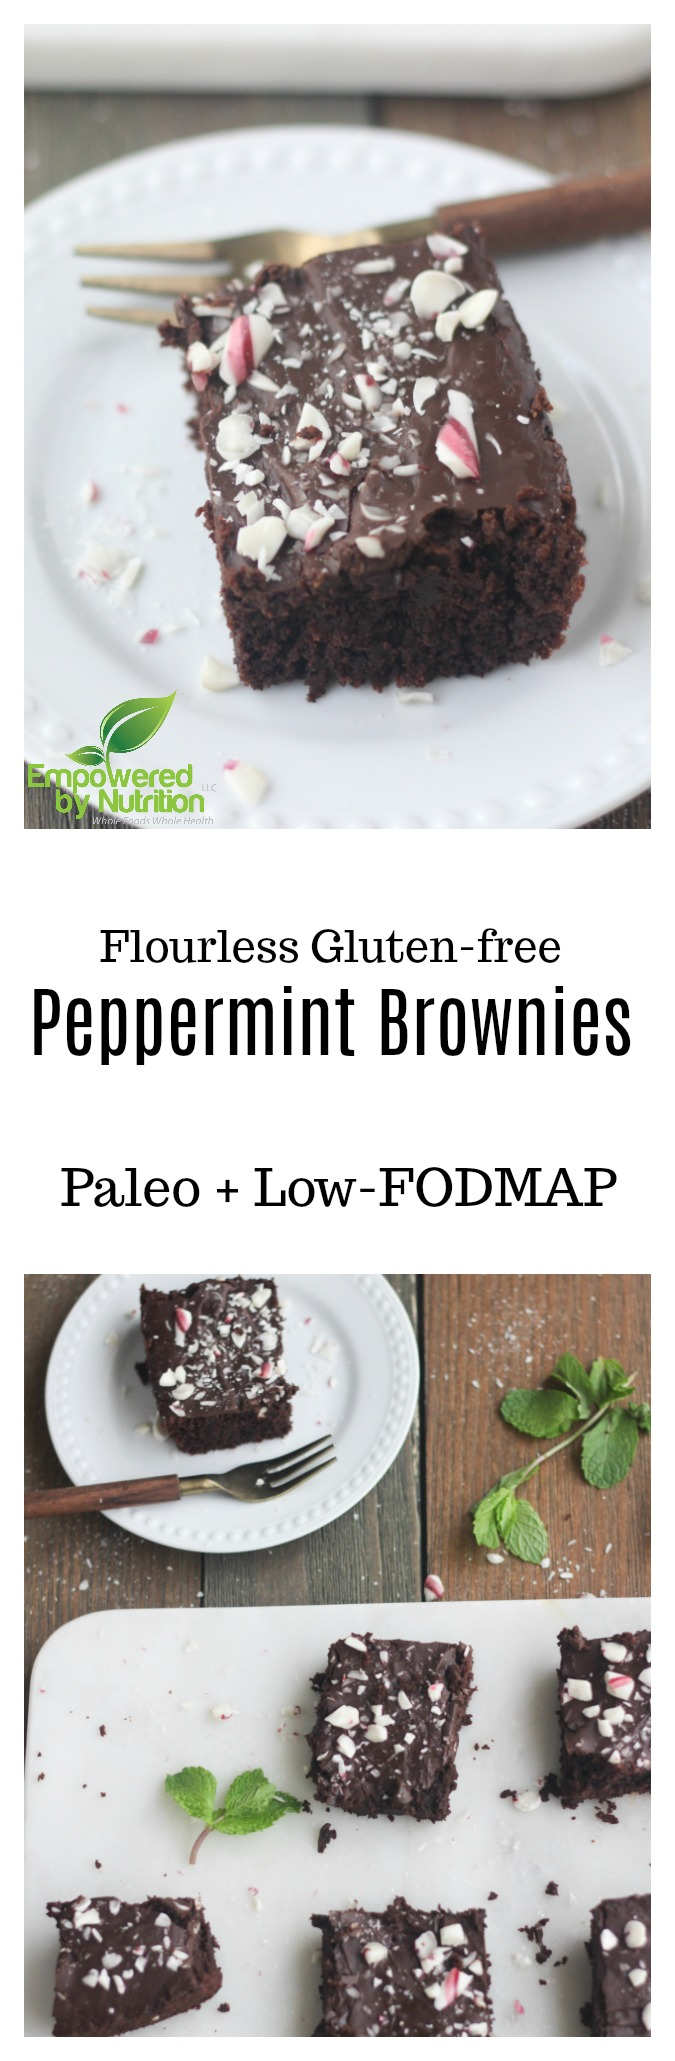 Peppermintbrownies.jpgGluten-free Paleo peppermint brownies dairy-free grain-free Christmas recipe